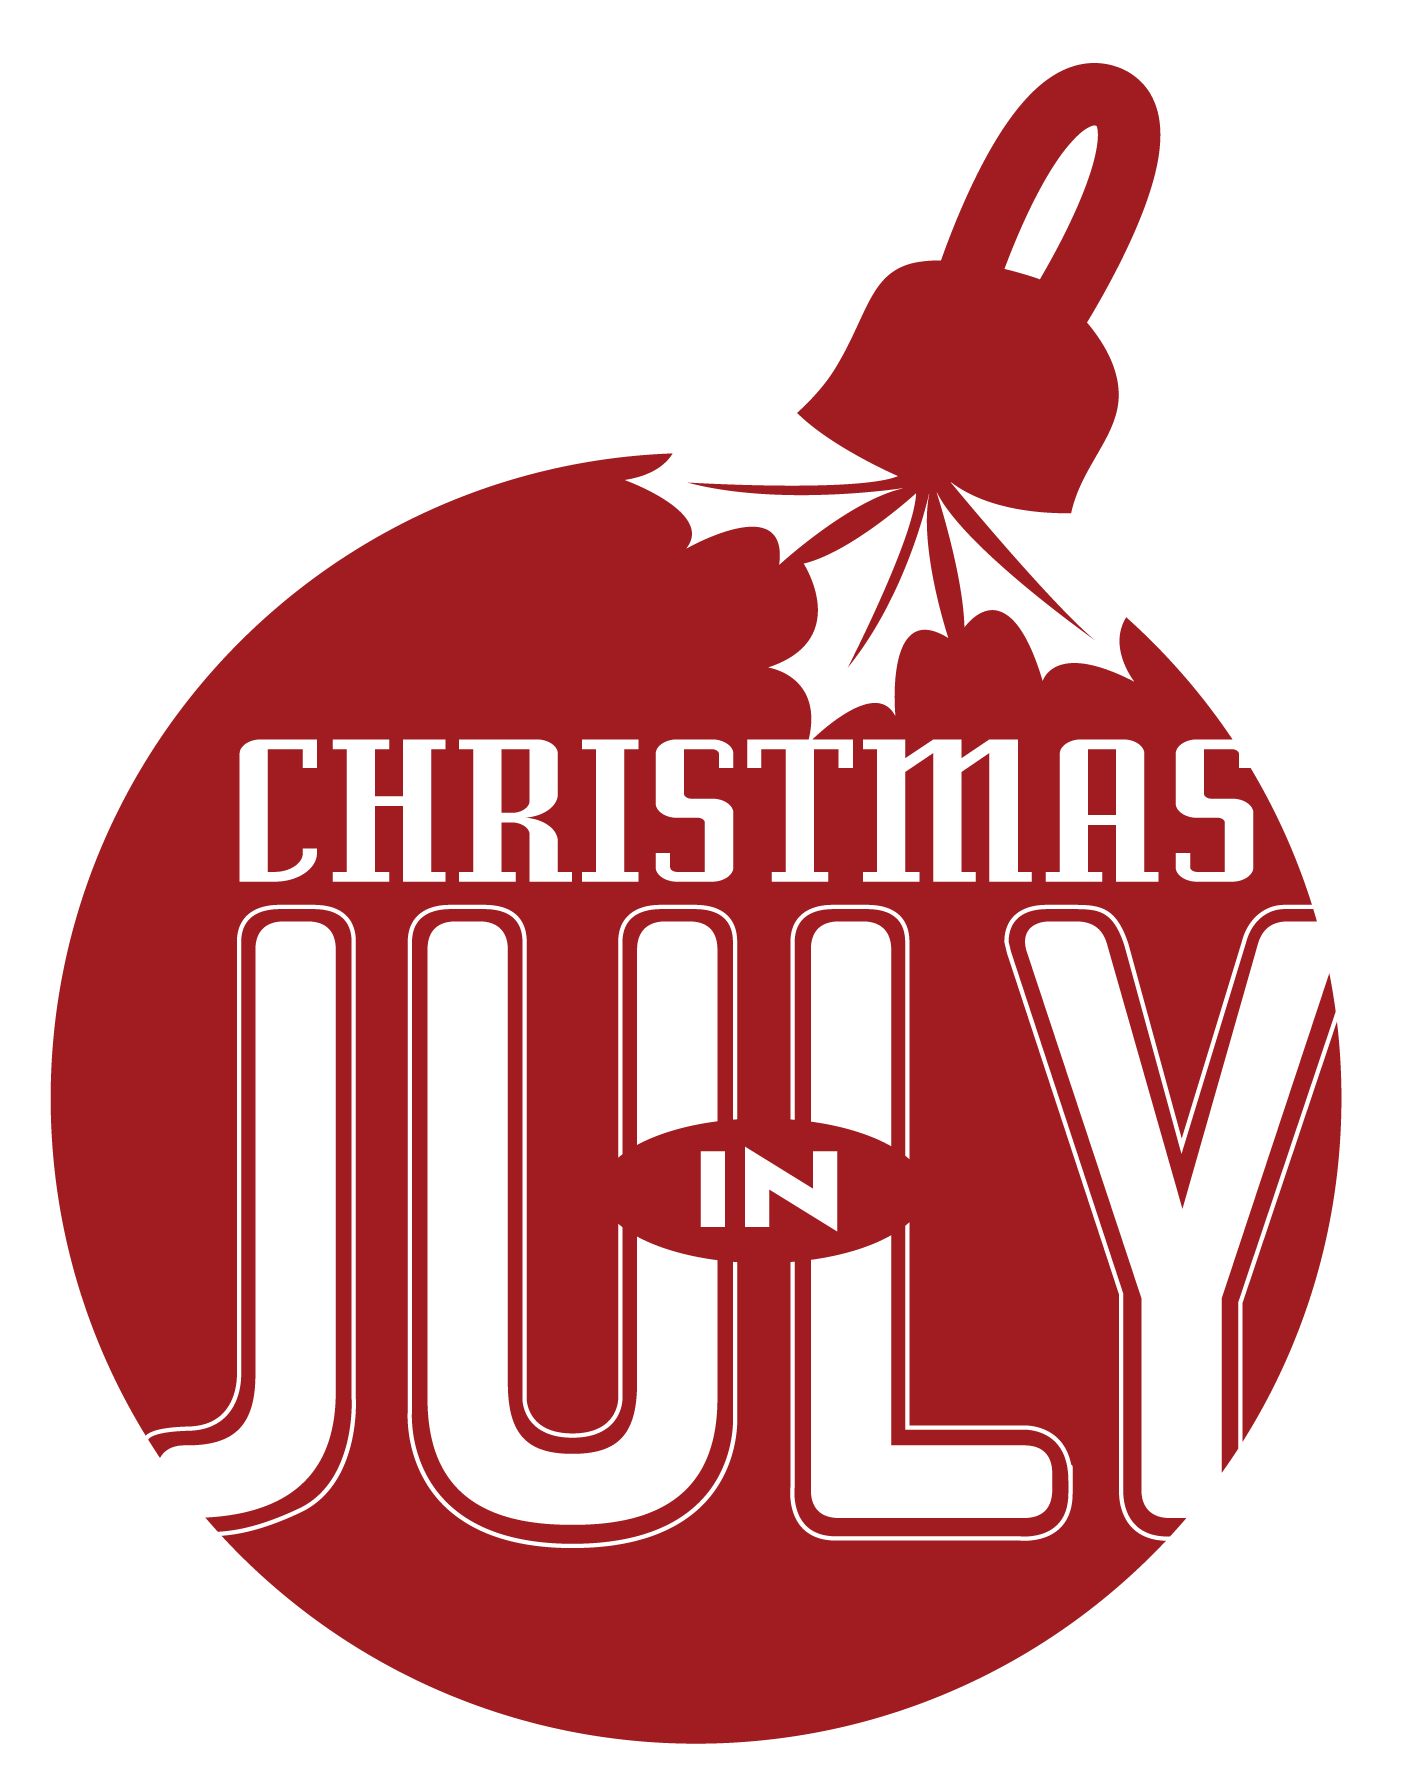 Christmas in july clipart image Christmas in July image